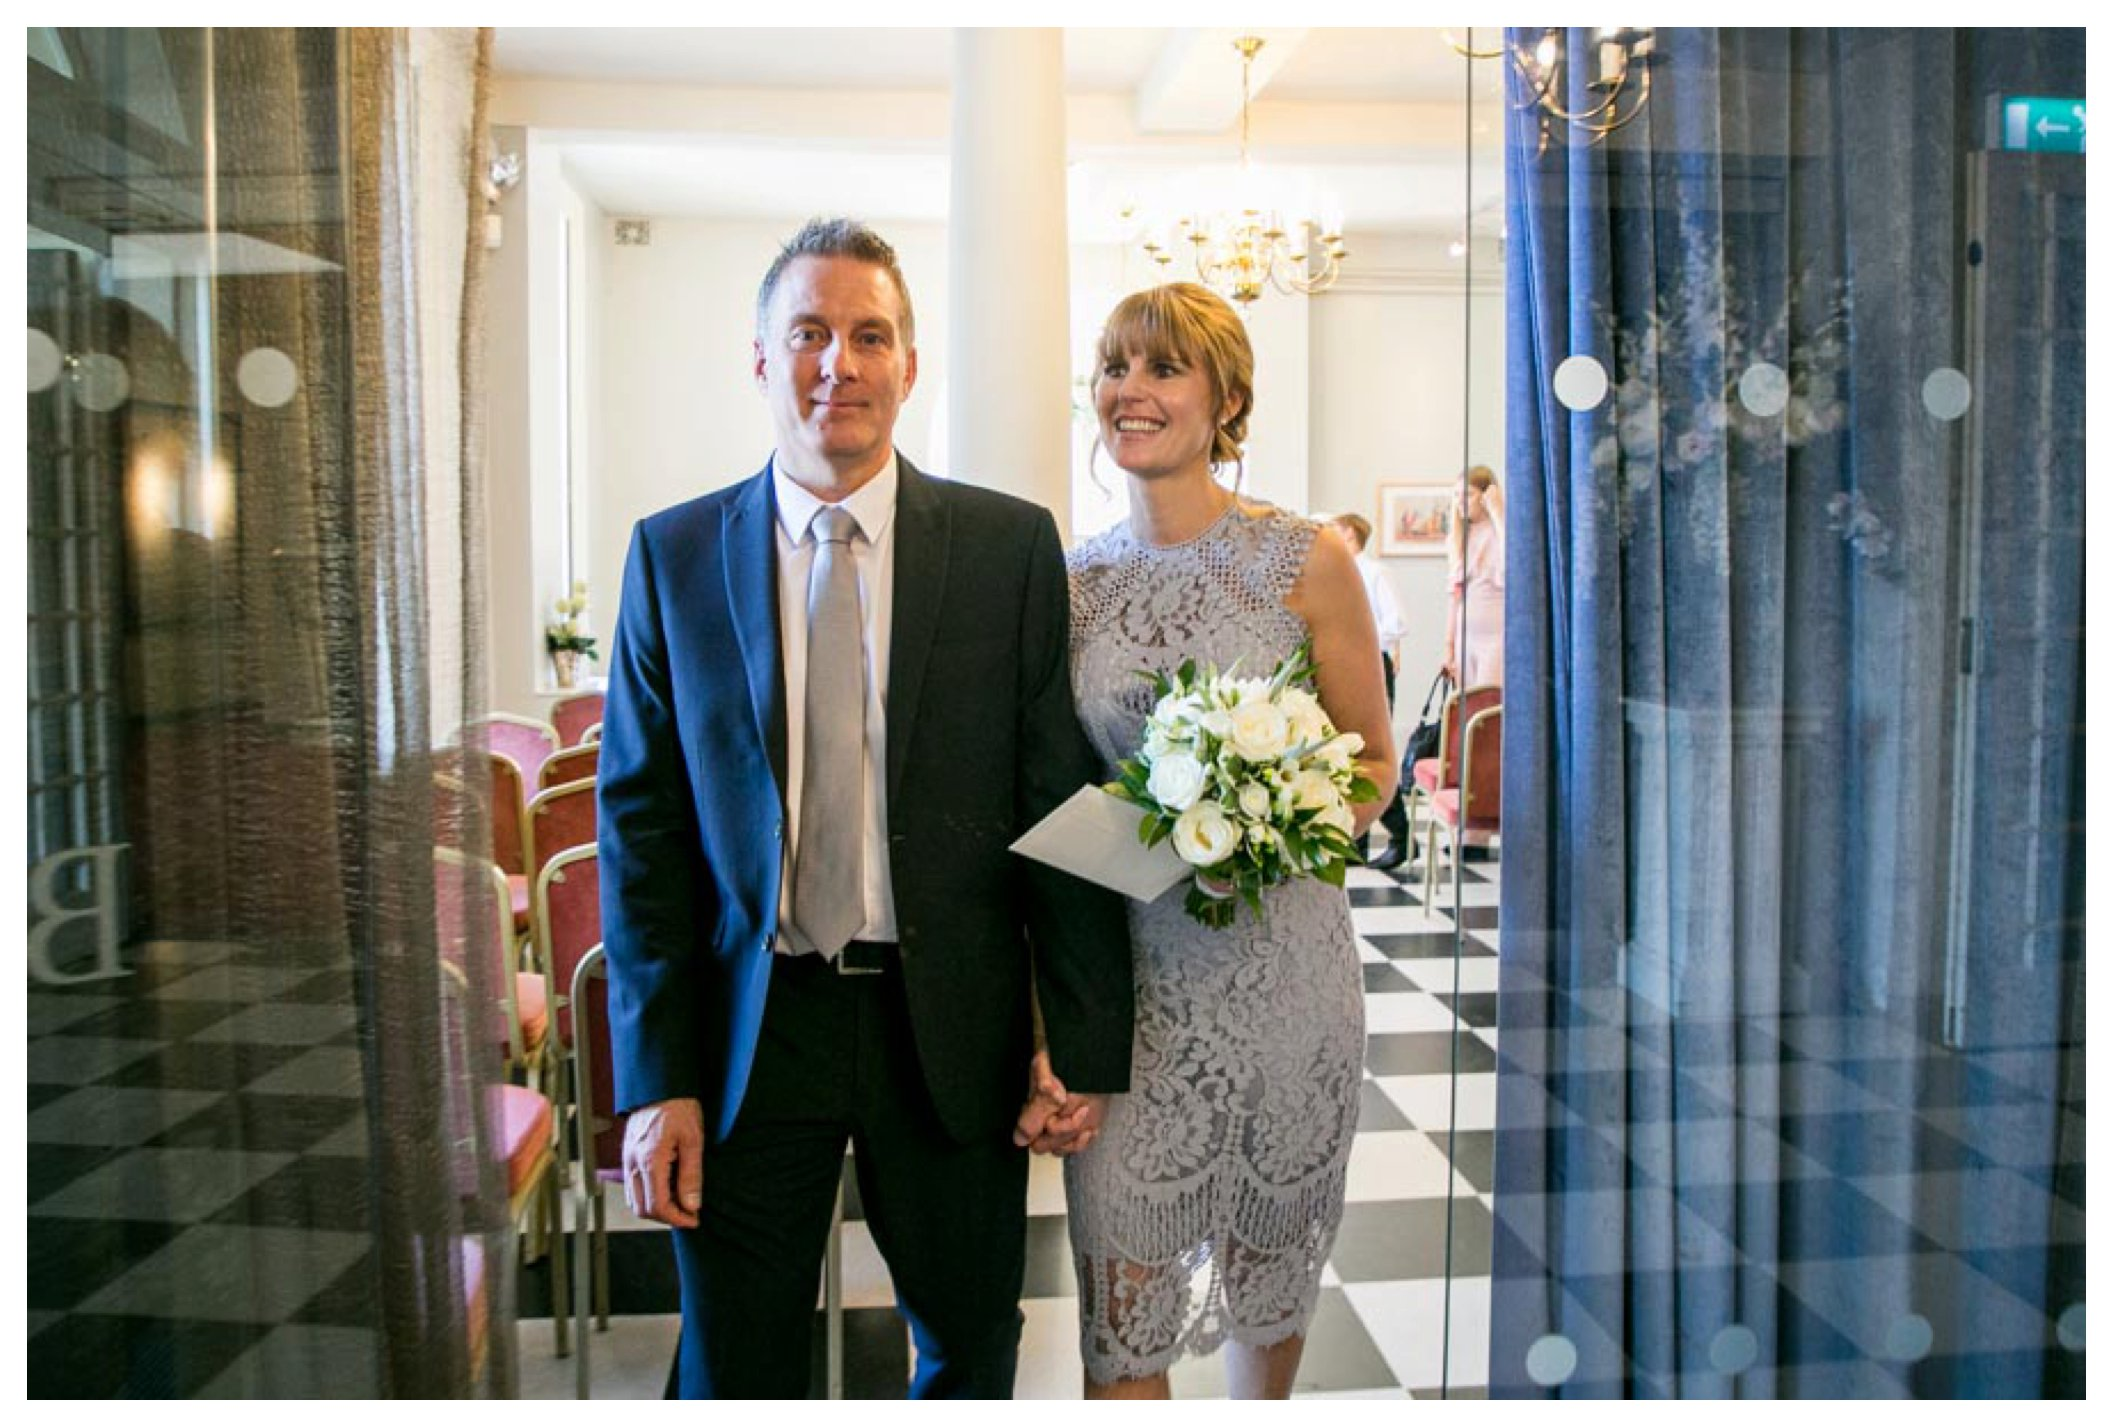 bride and groom leaving wedding ceremony at Athenaeum Bury St Edmunds